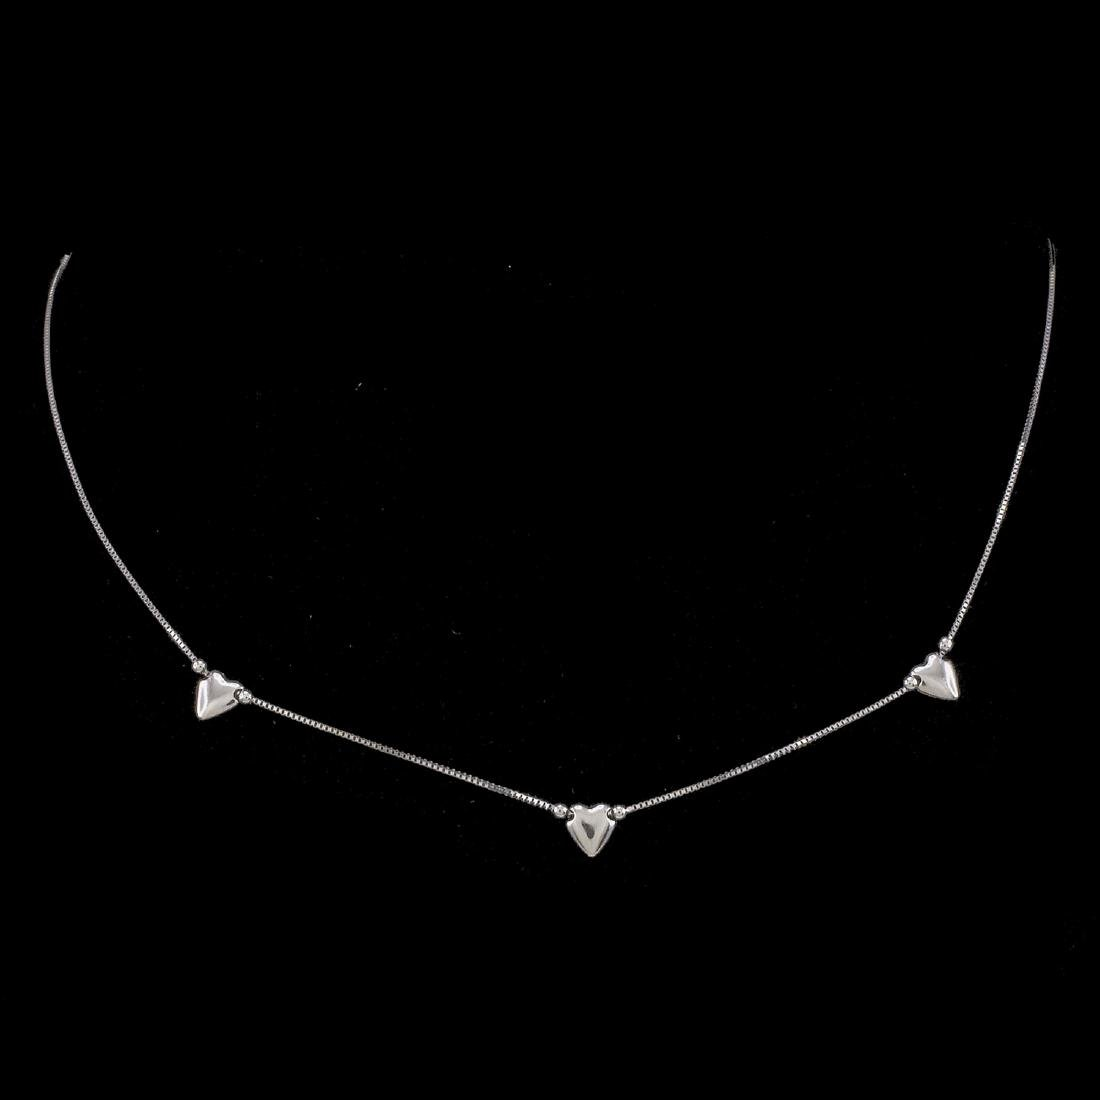 *Fine Jewelry 14 KT White Gold Box Chain W 3 Station